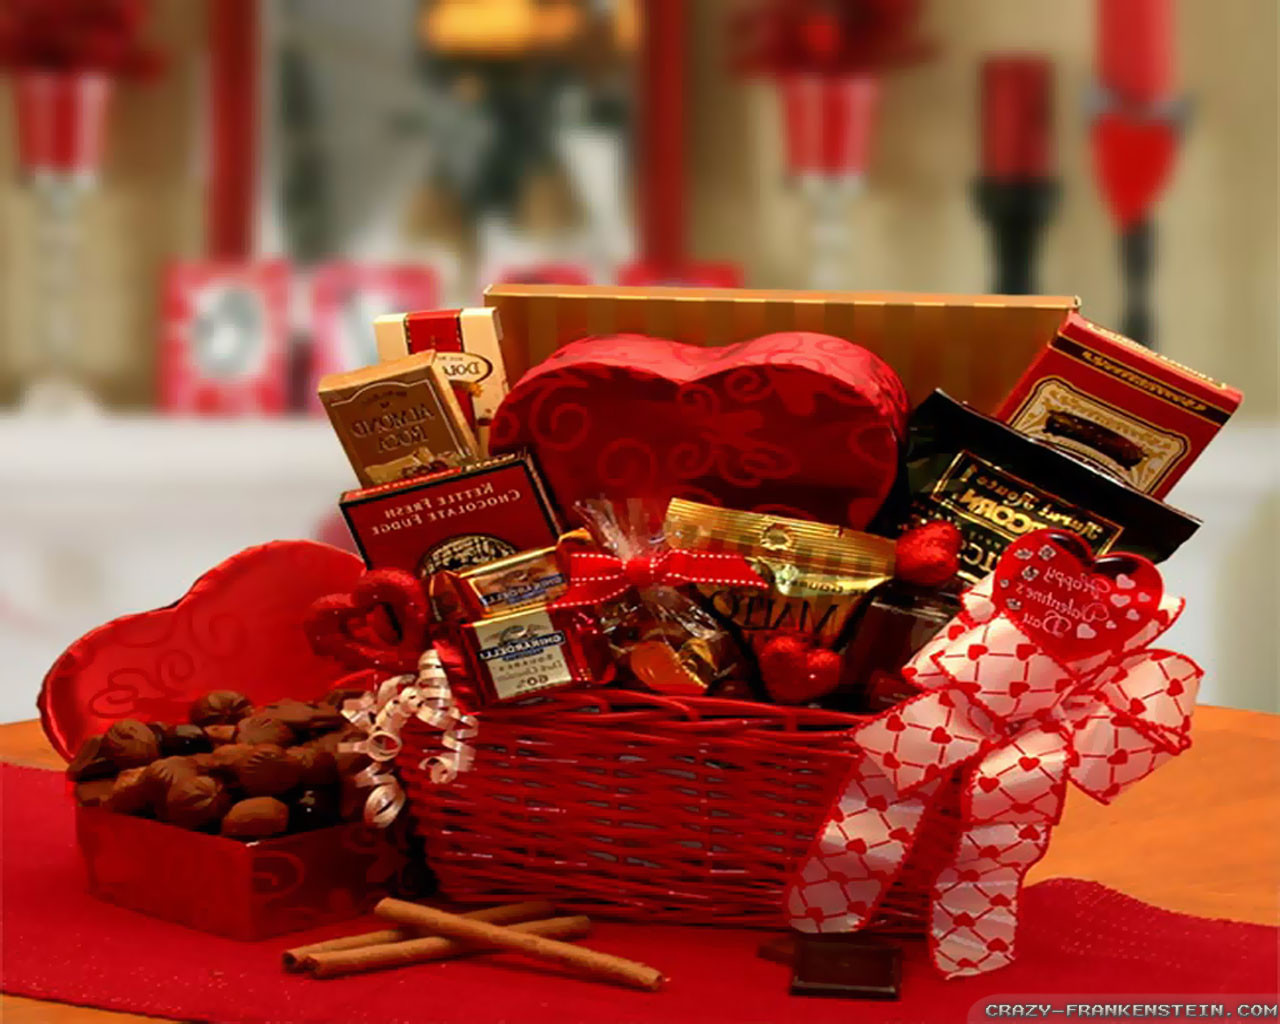 Best ideas about Valentines Gift For Her Ideas . Save or Pin LOVE My Live Valentines day t ideas 2013 t for Now.